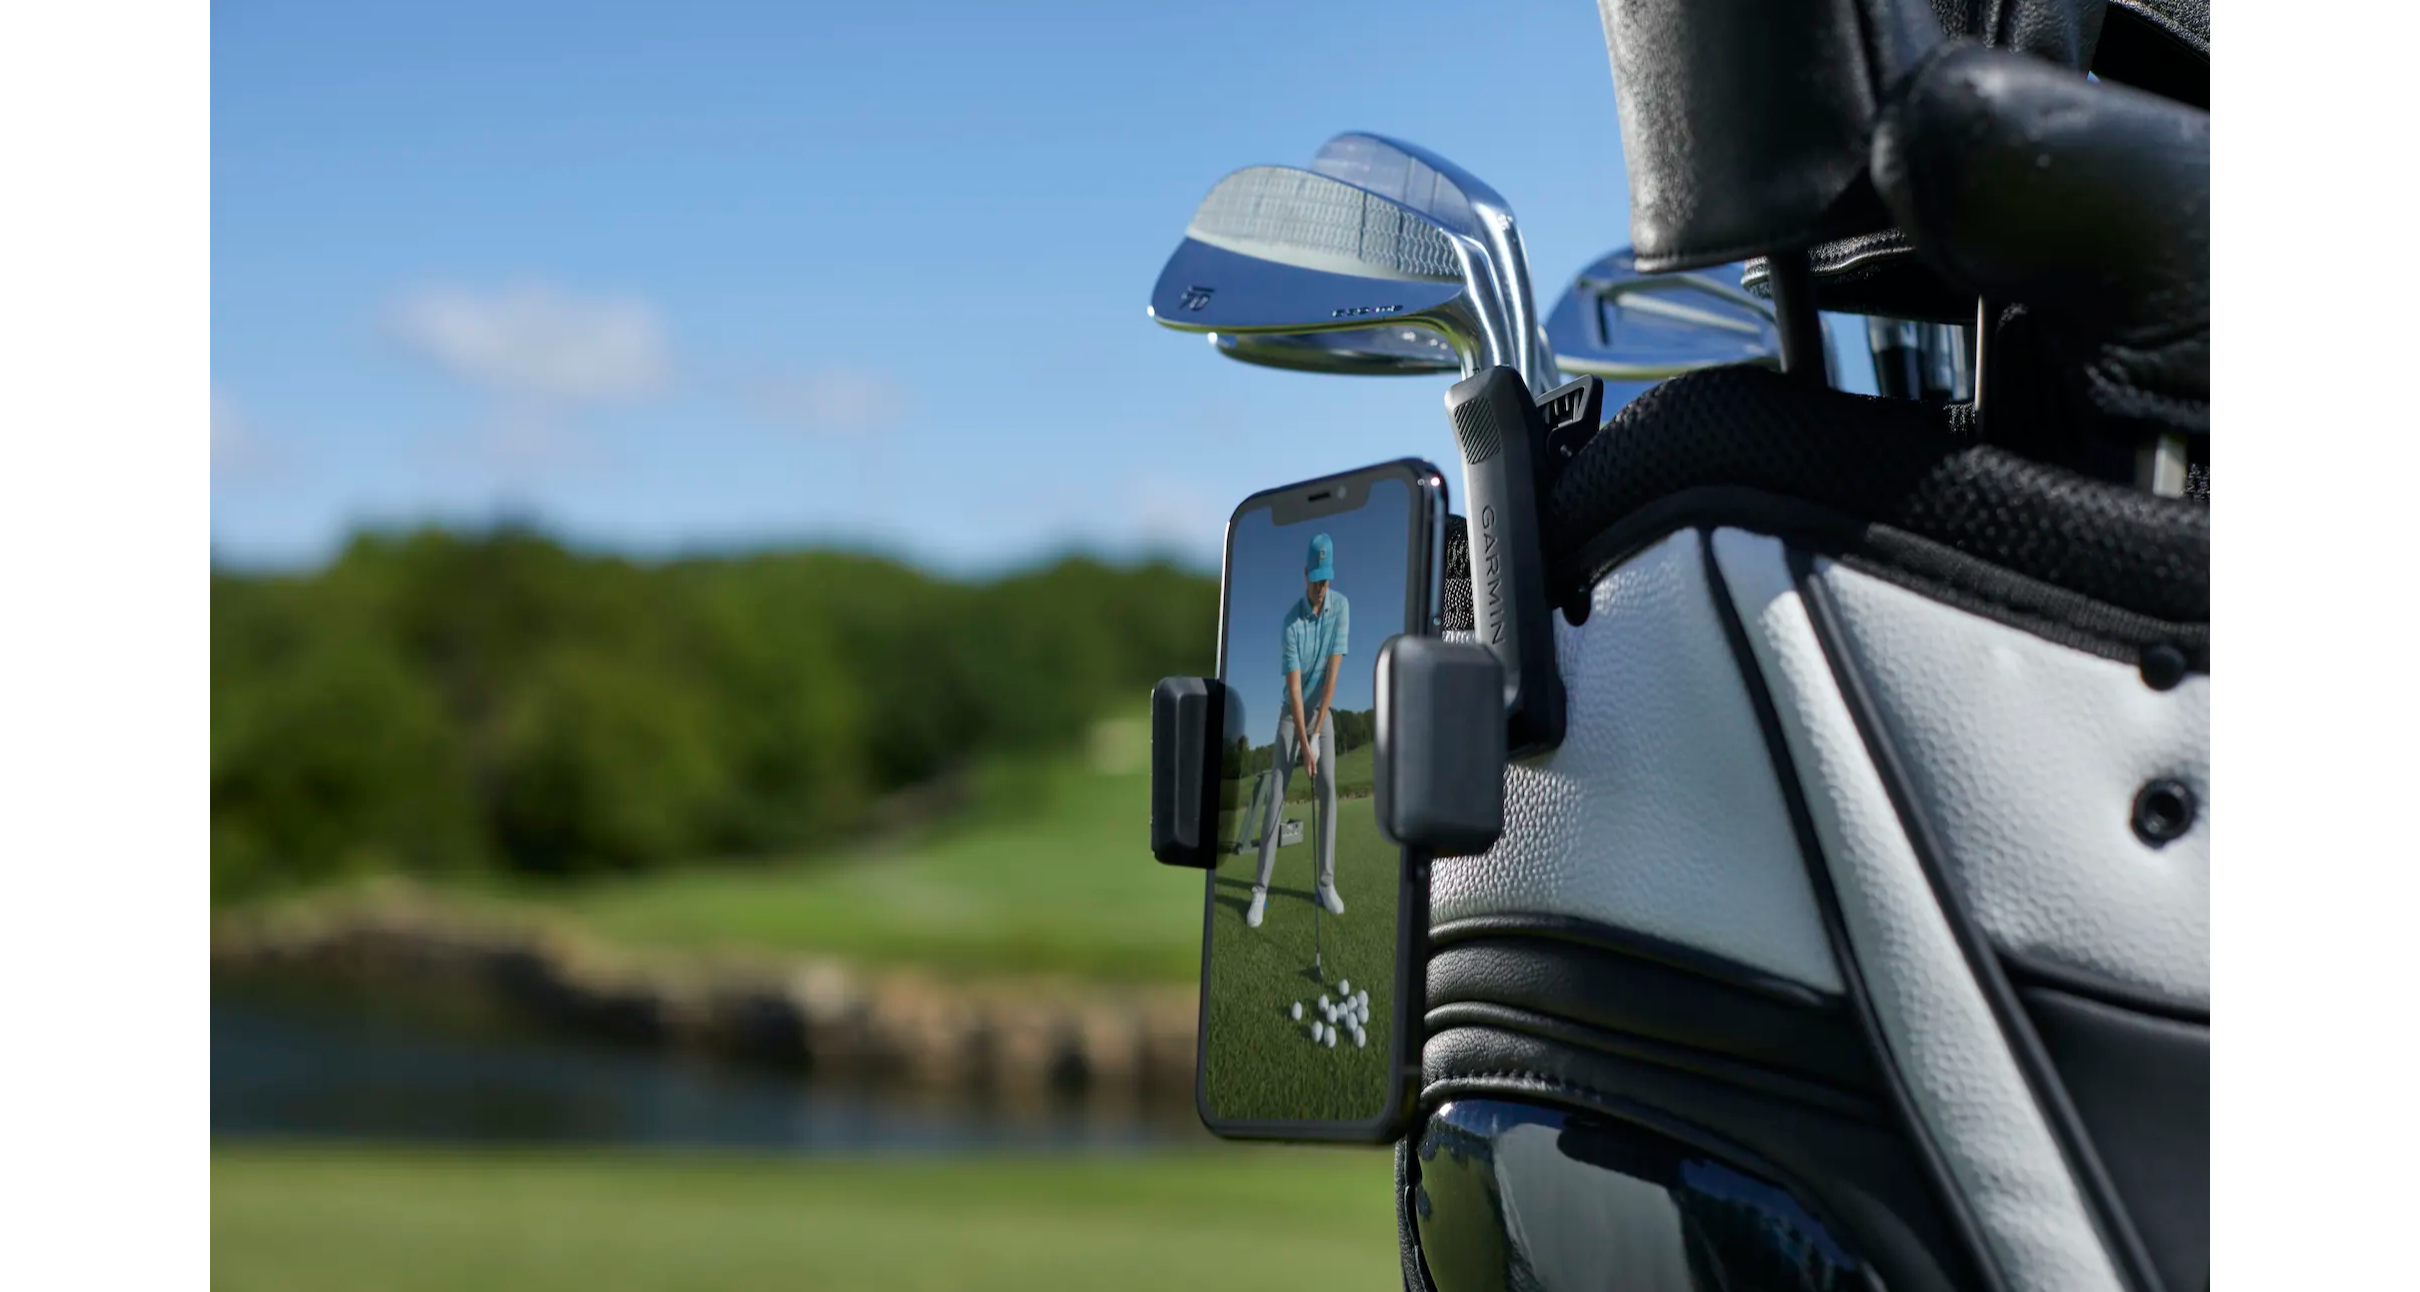 Garmin phone clip that comes with the Approach R10 golf launch monitor